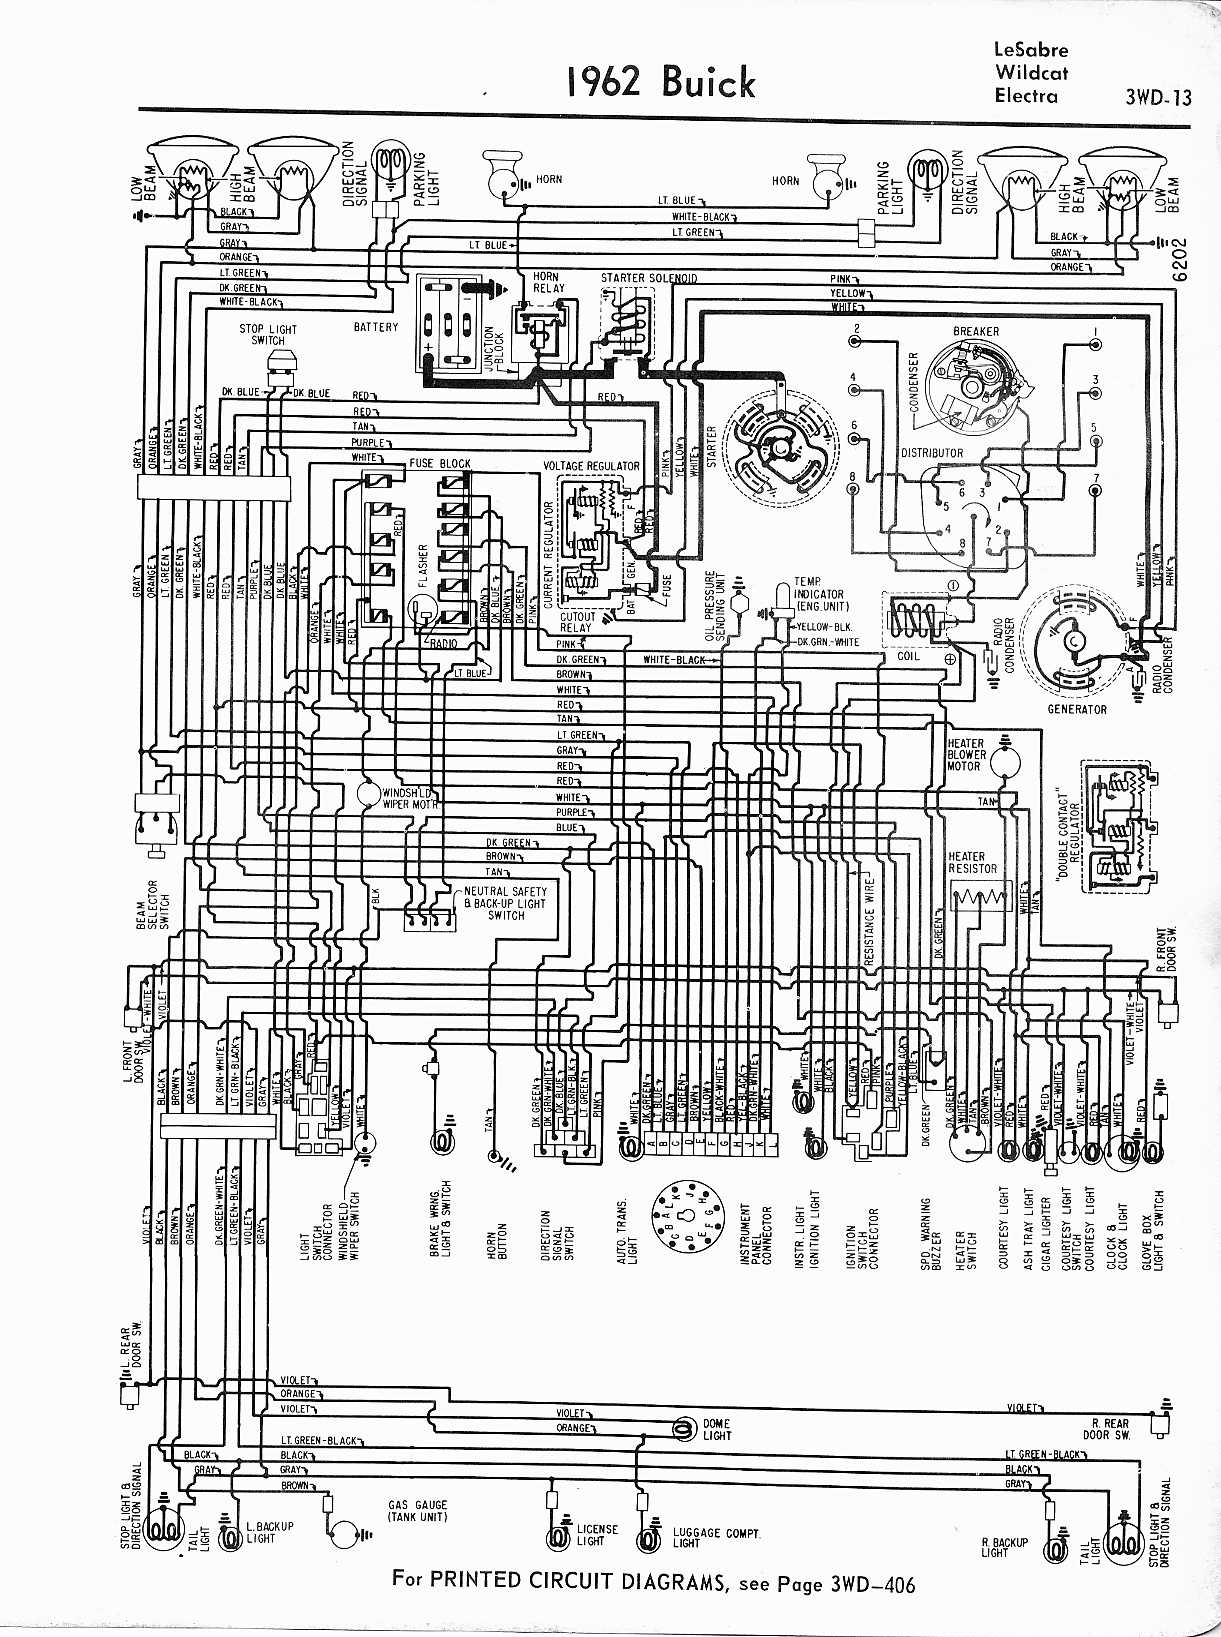 1970 buick gs wiring diagram all wiring diagram buick skylark wiring harness wiring diagrams best classic buick gs 1970 buick gs wiring diagram